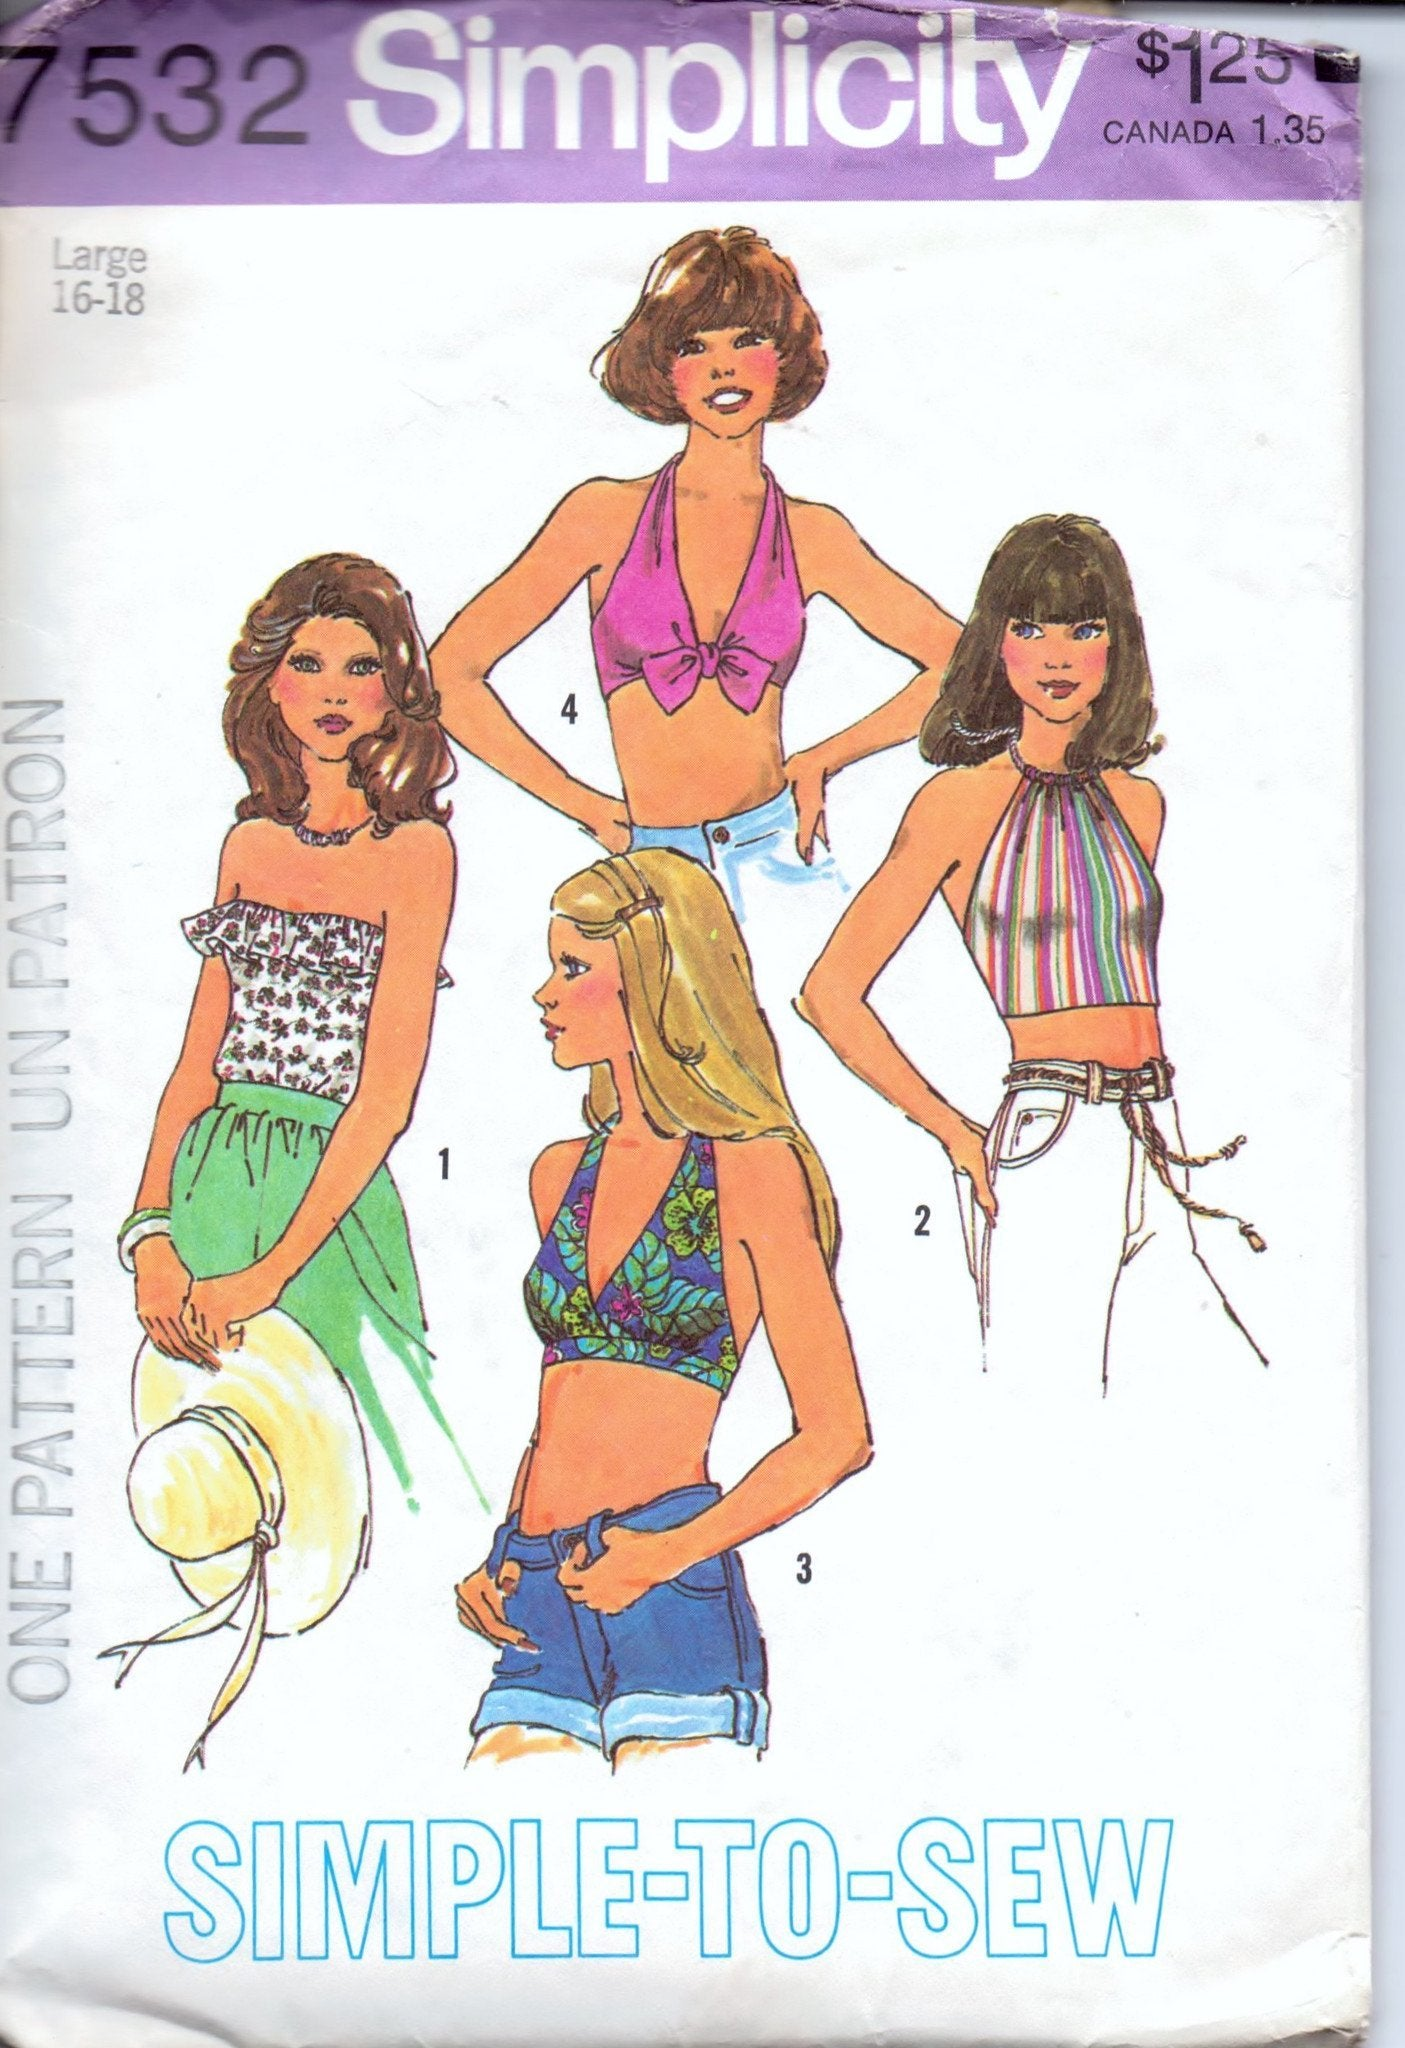 Simplicity 7532 Ladies Summer Halter Top Bikini Vintage 1970's Sewing Pattern - VintageStitching - Vintage Sewing Patterns